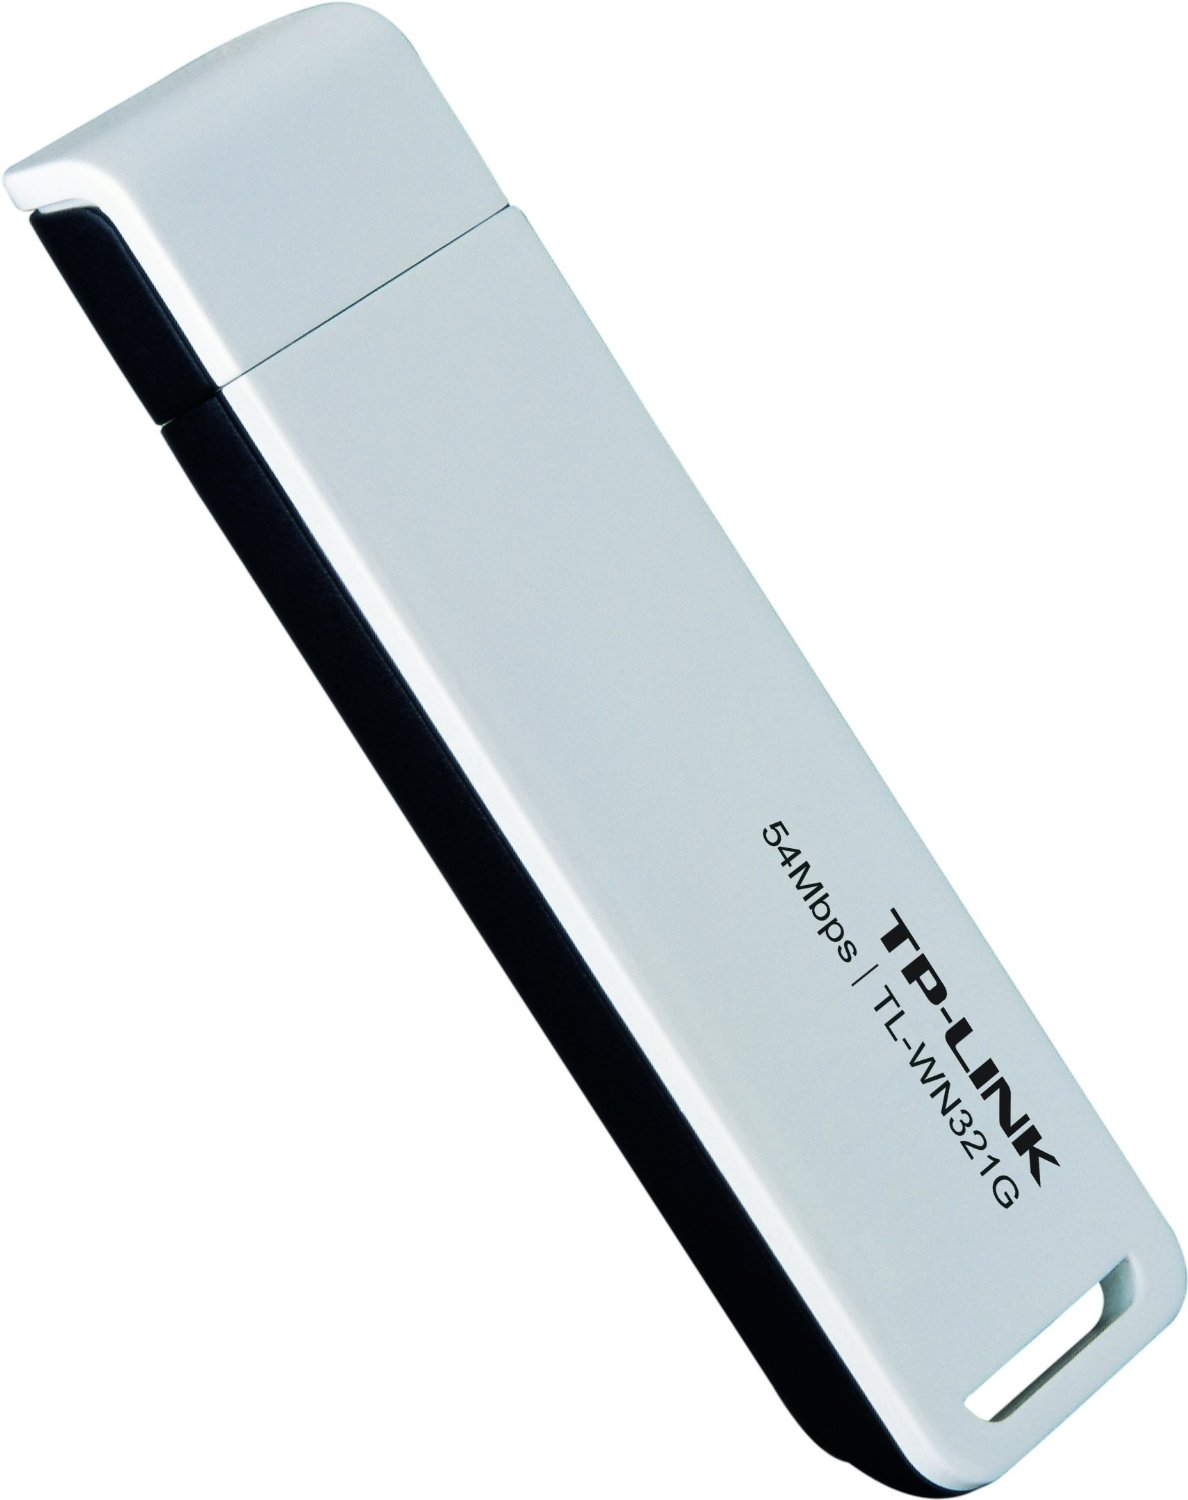 TP LINK RT73 USB WIRELESS DRIVERS DOWNLOAD